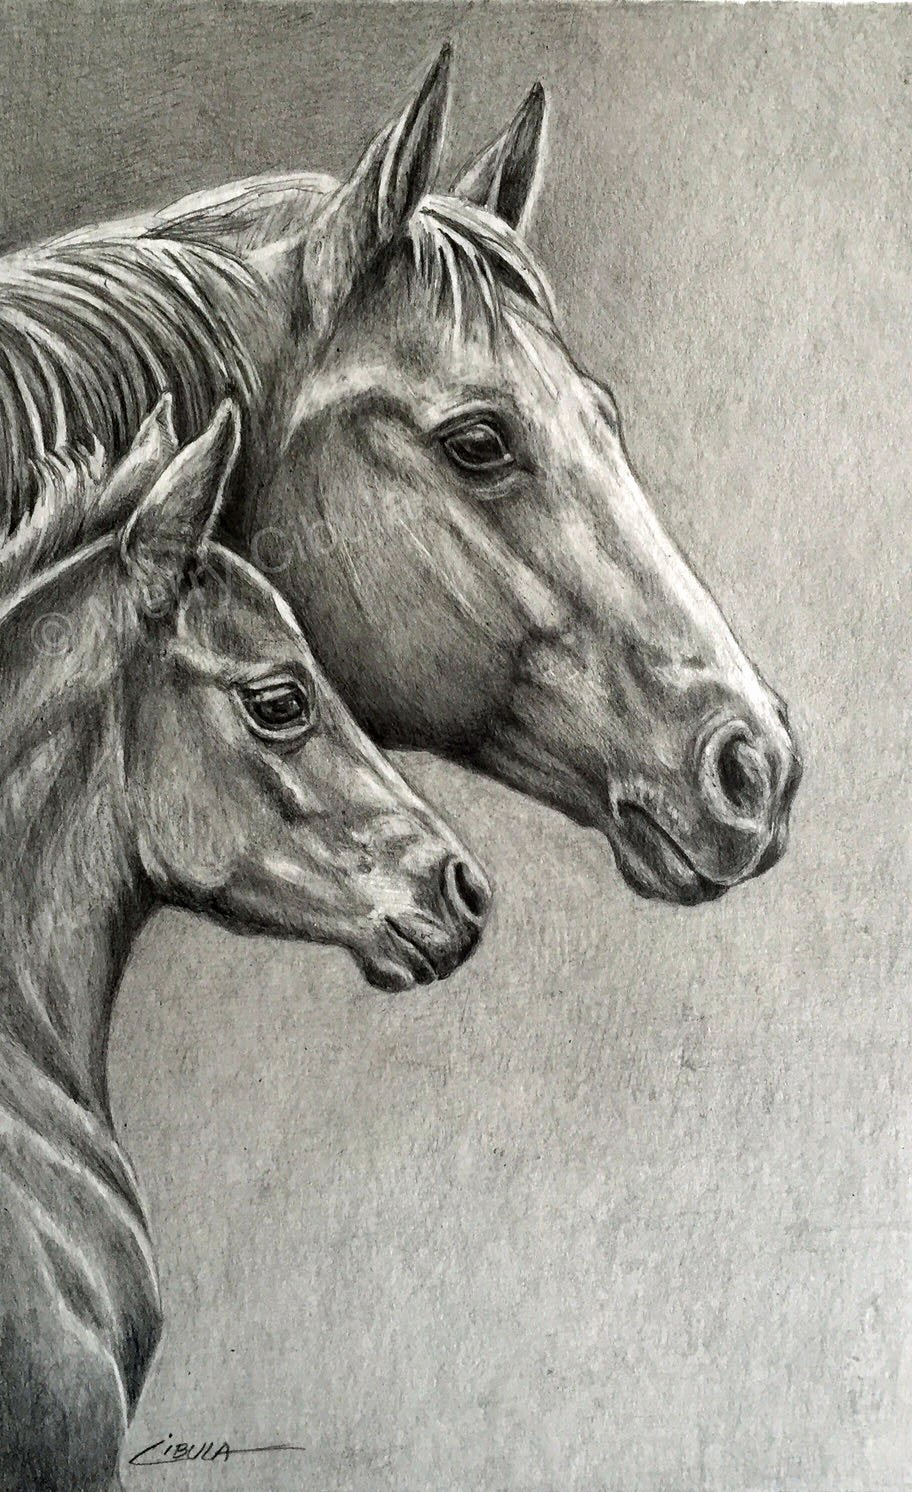 Pencil Sketches Of Horses Beautiful Equine Art An original Equine Graphite Pencil Drawing Of A